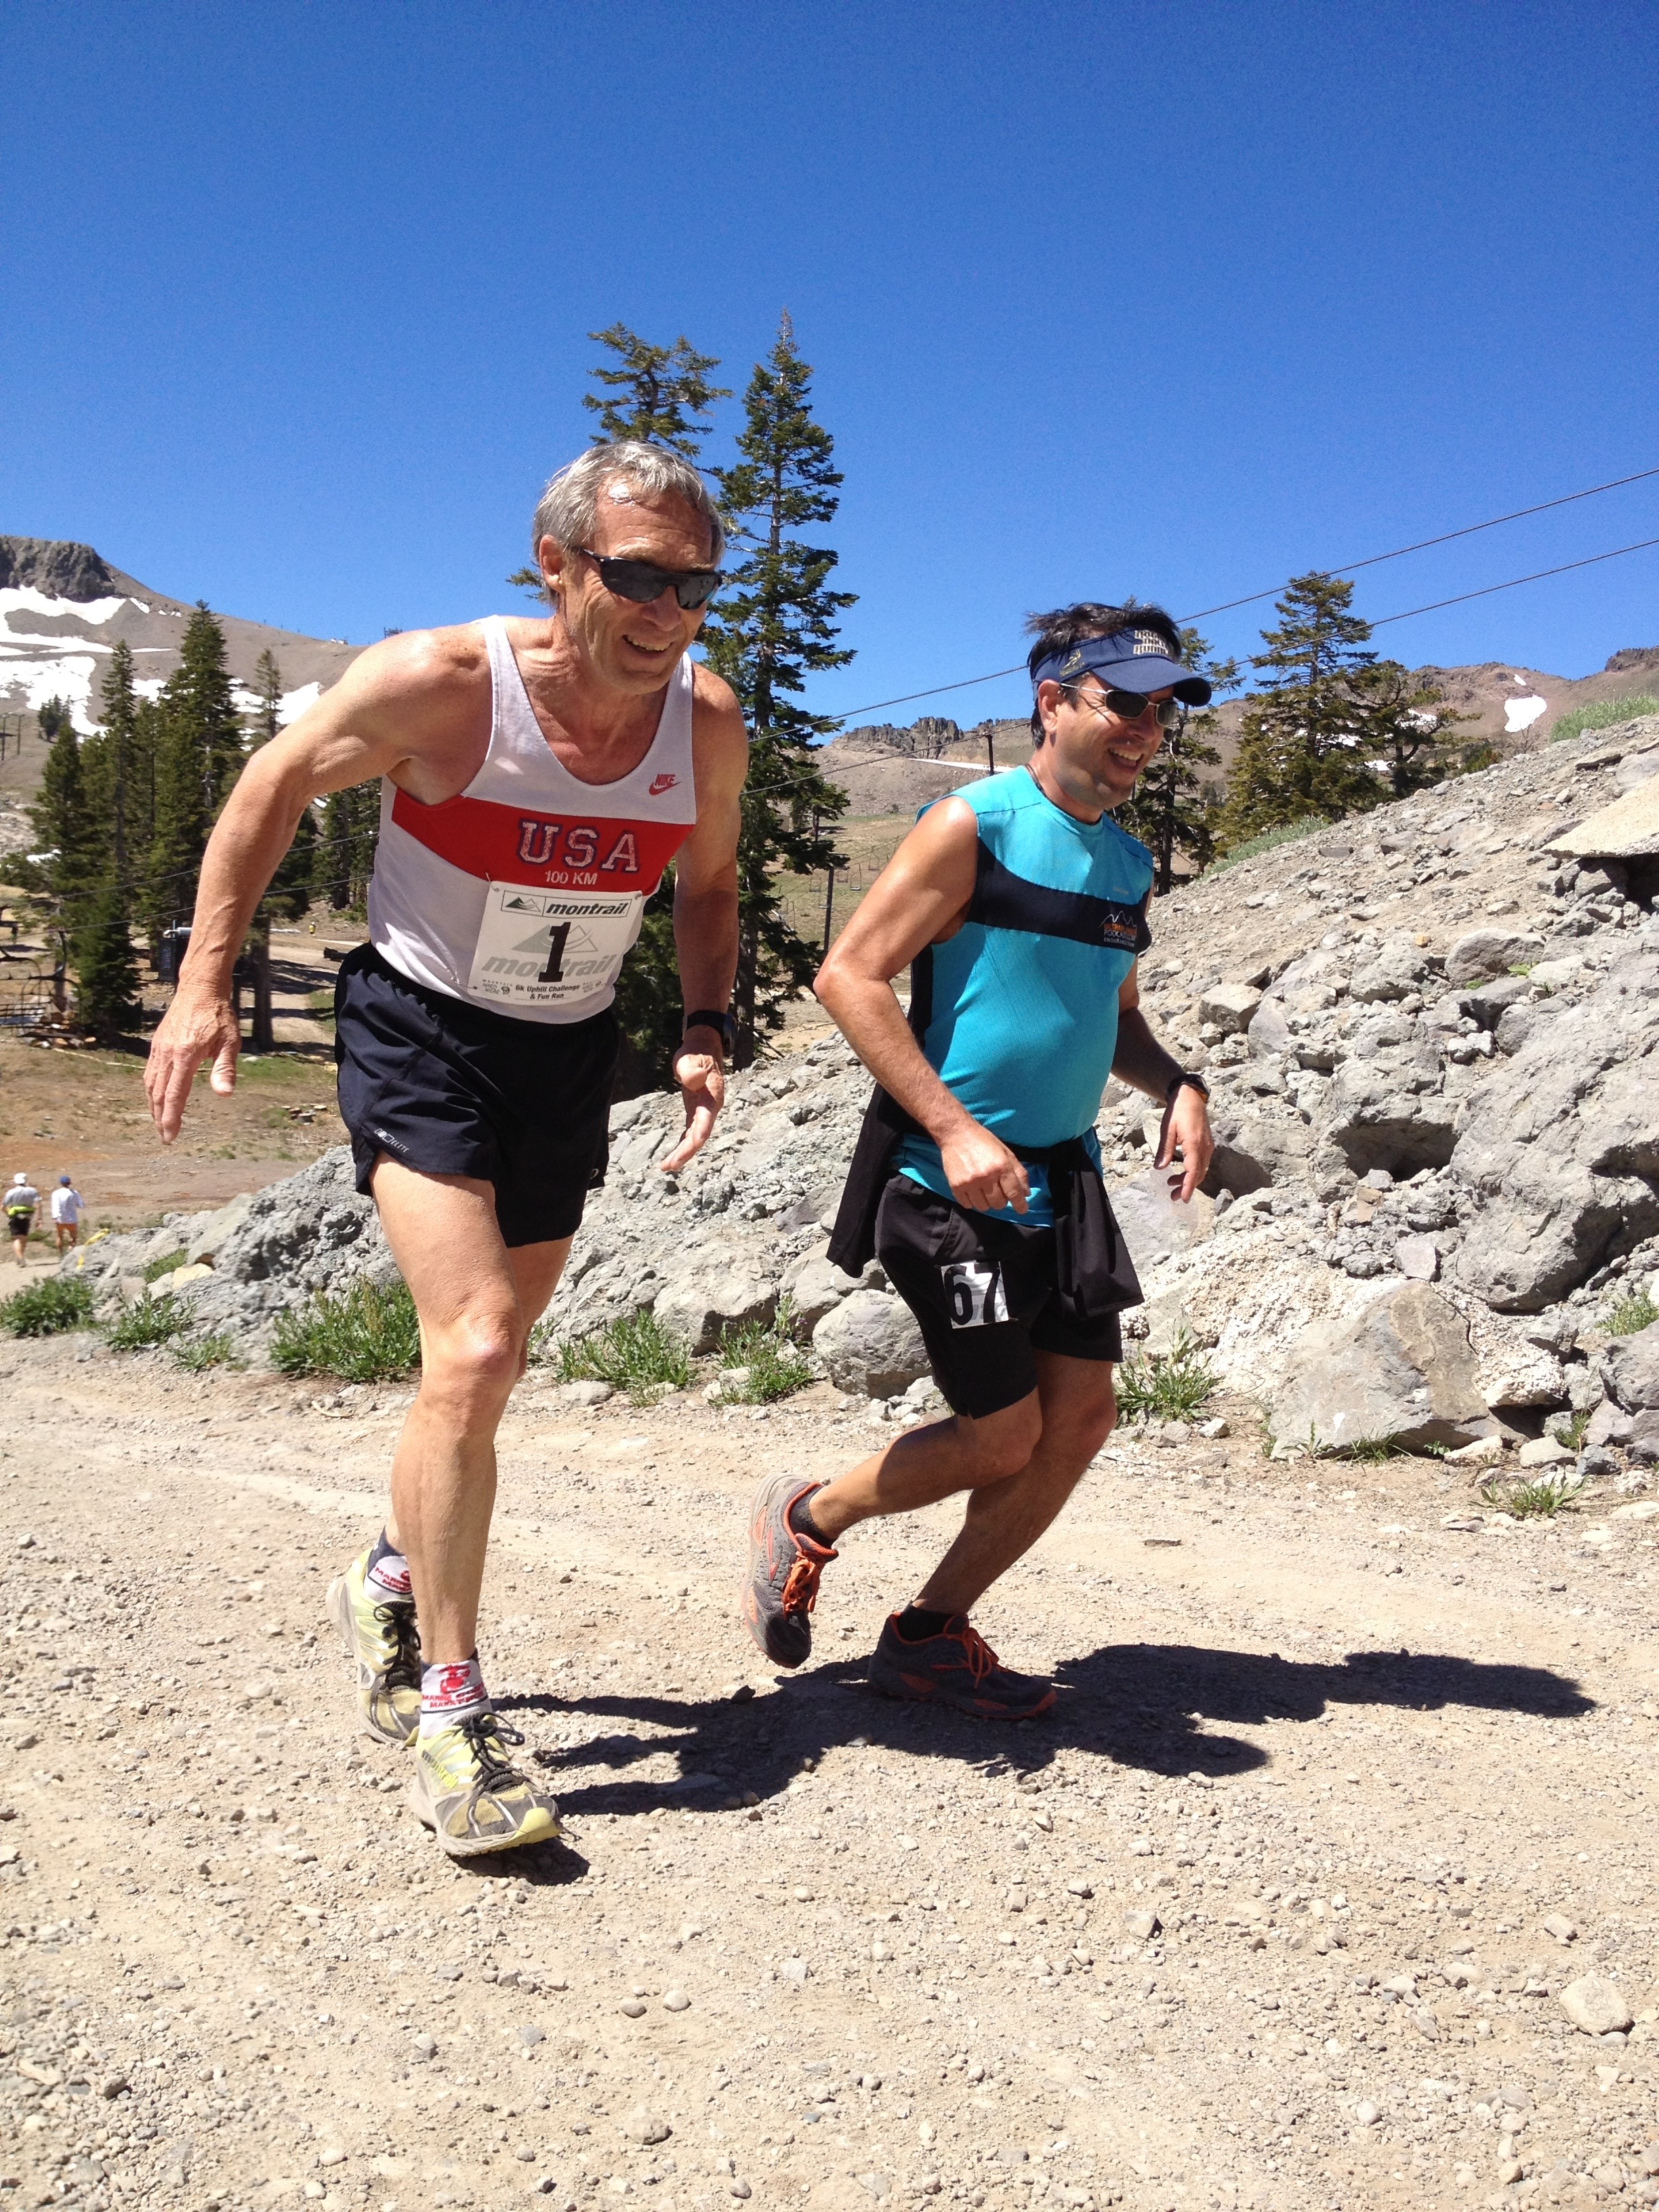 Frank and Scotty running up the Escarpment in Squaw Valley in 2012.